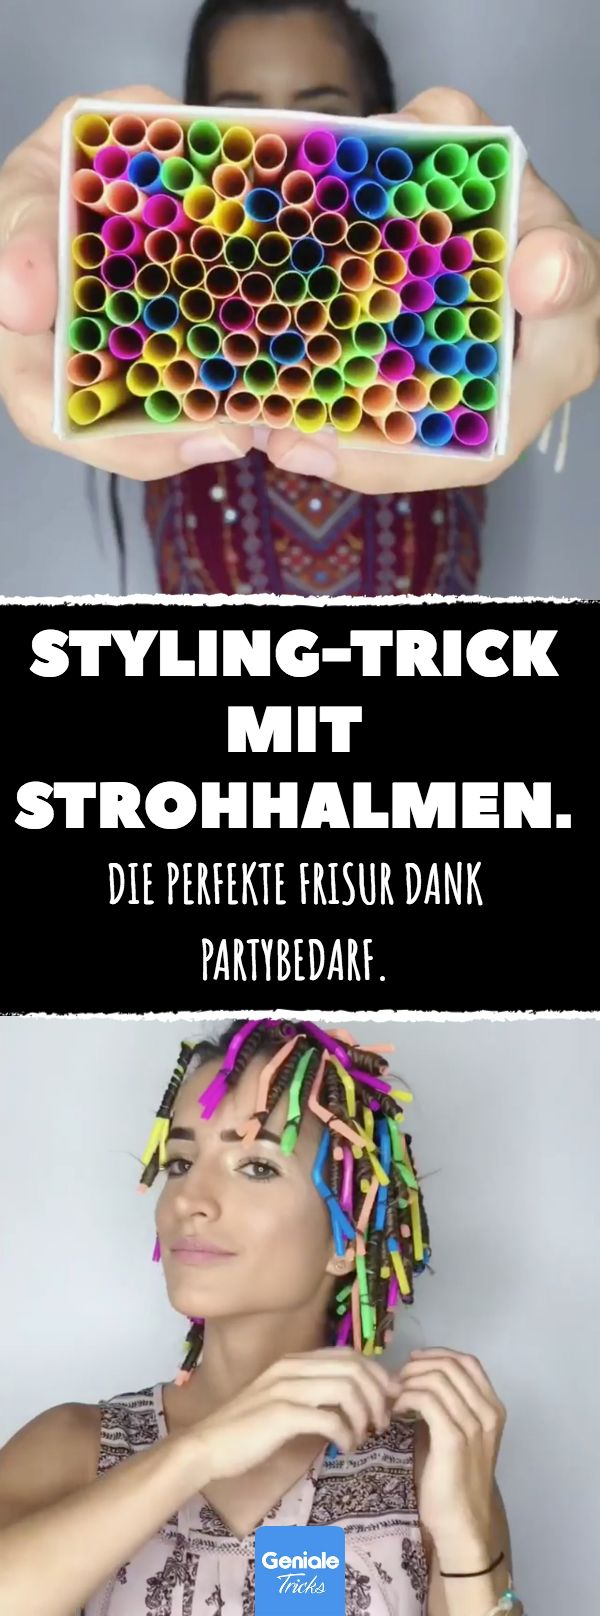 Styling trick with straws. #pipe #lope #styling #cream #diy